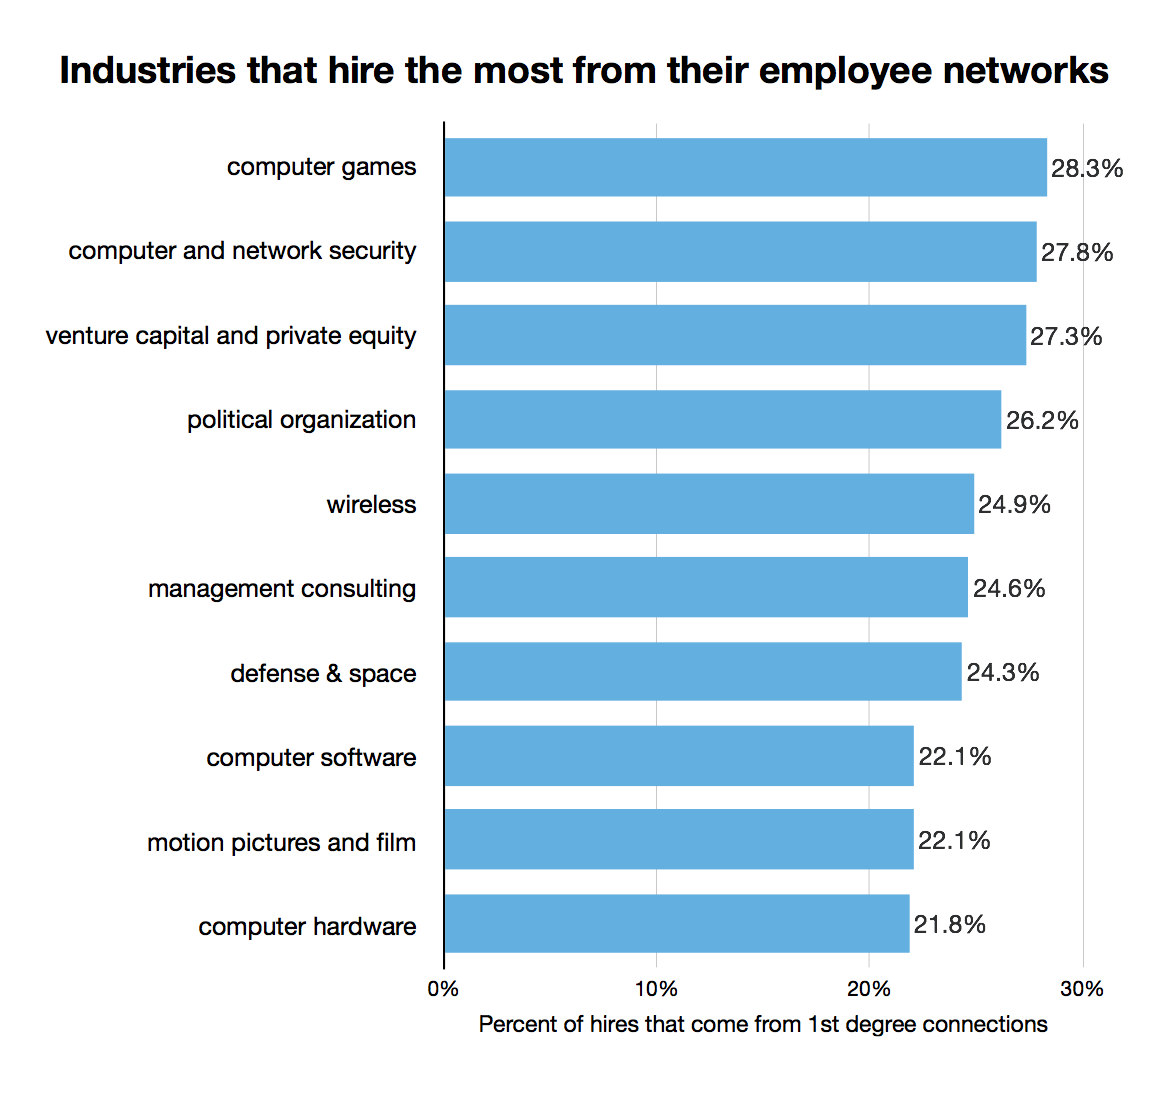 industries-that-hire-most-from-first-degree